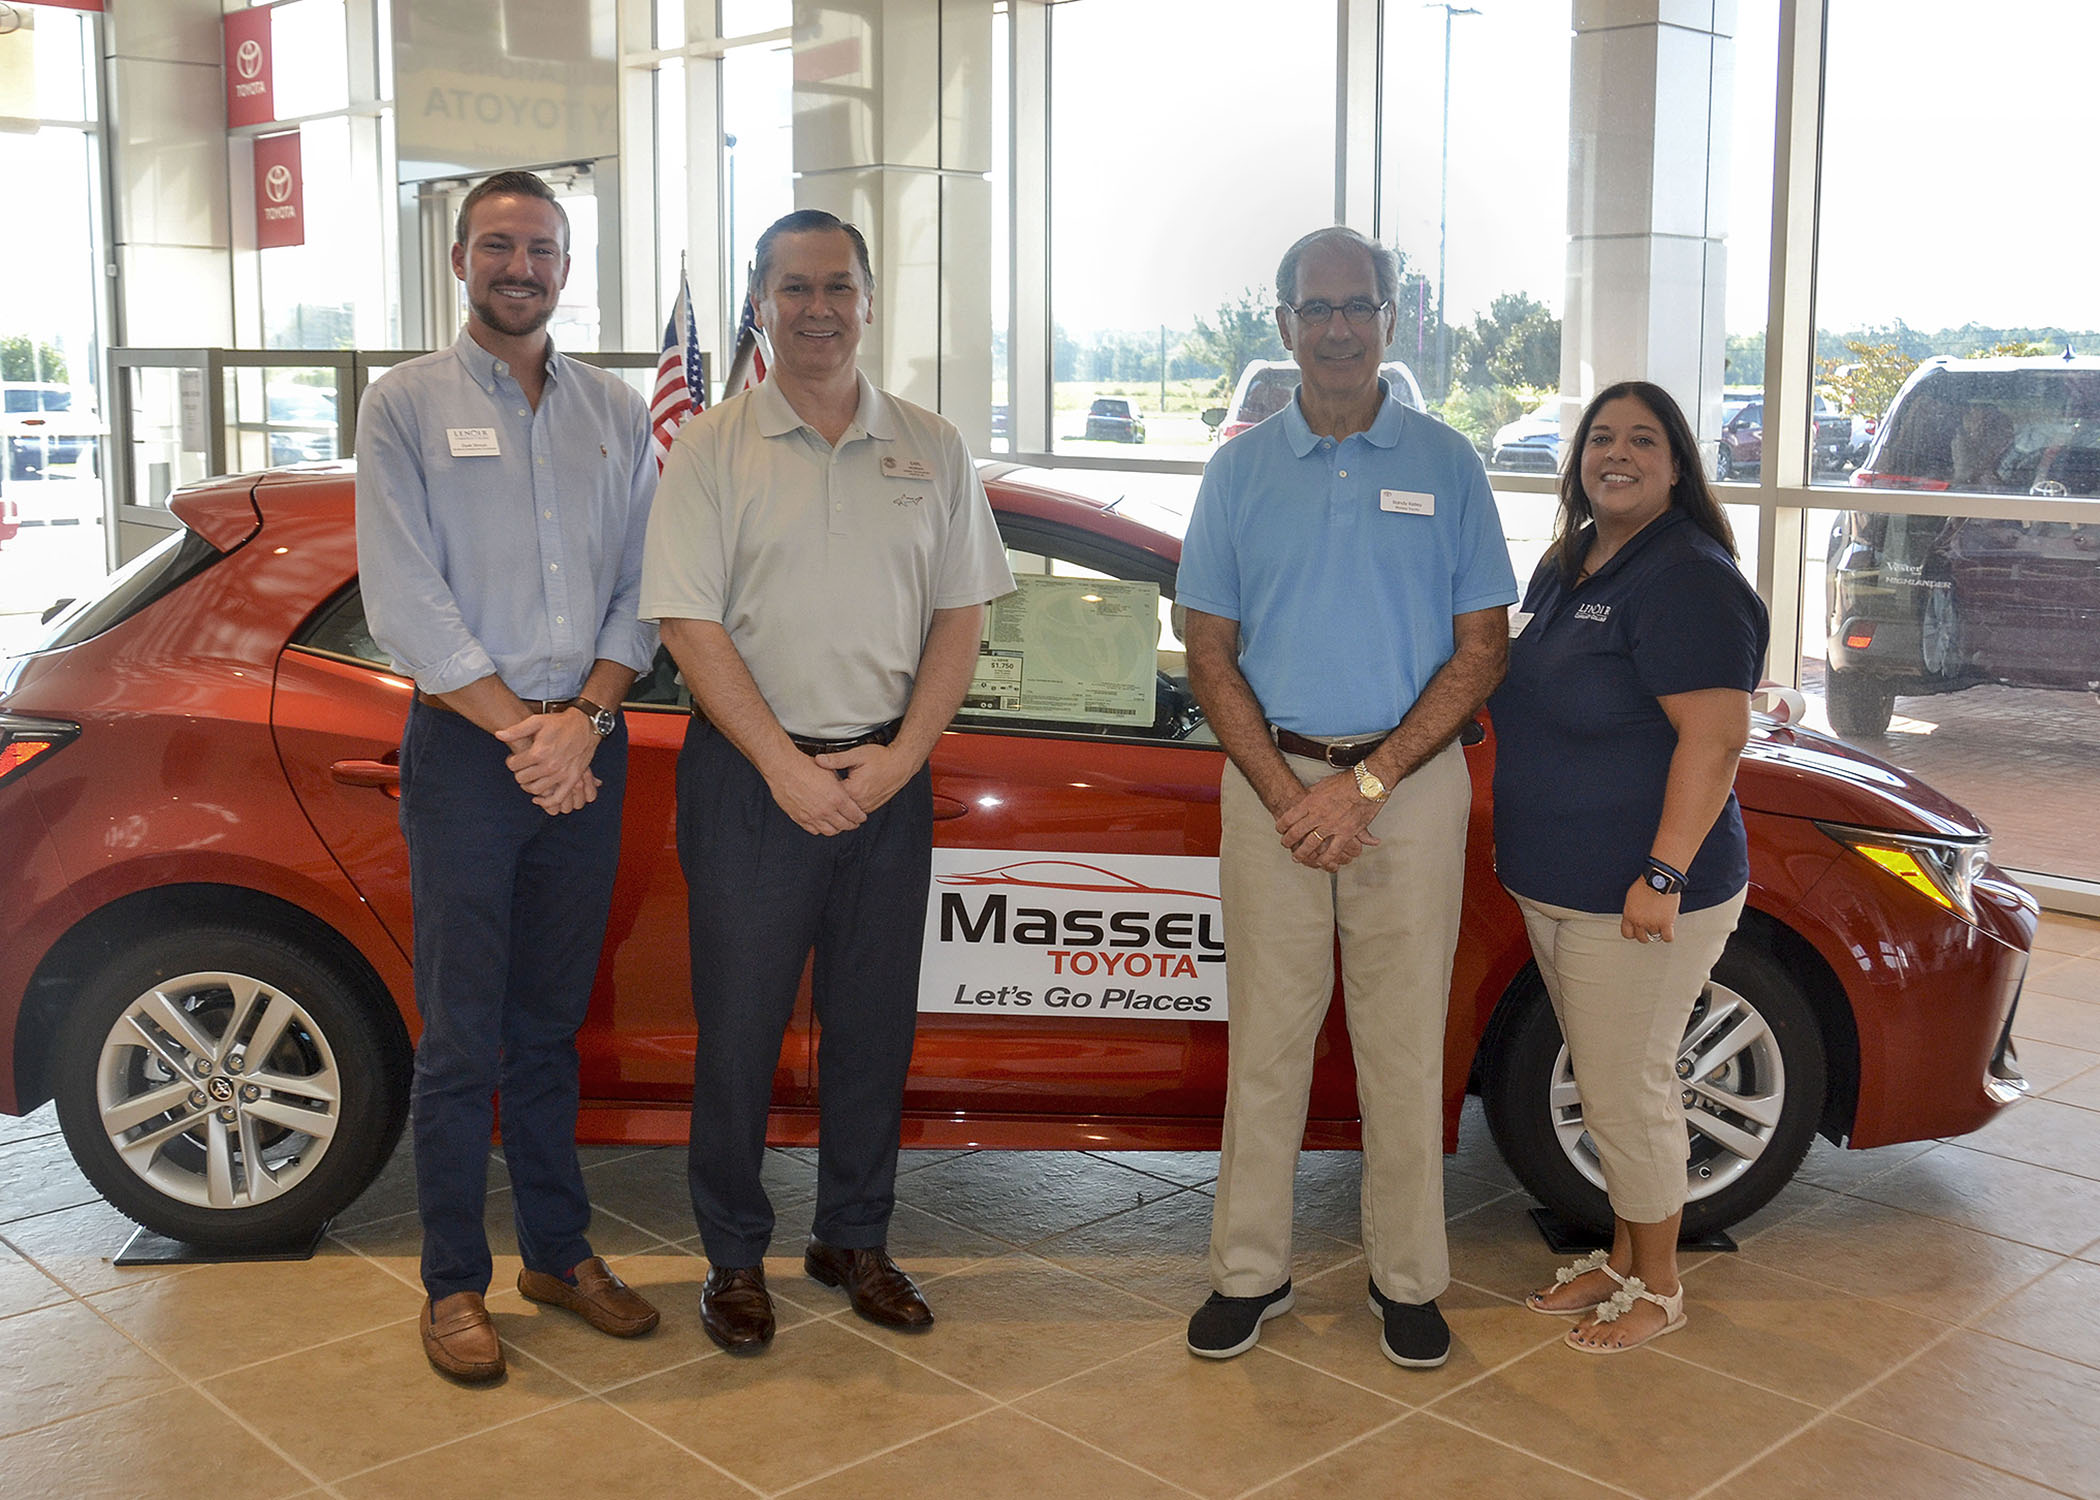 Pictured left to right are Dusk Stroud, LCC Workforce Development Coordinator, Earl Morgan Massey Toyota General Manager, Randy Kelley, President of Massey Toyota and Katherine Pearson, LCC Development Coordinator